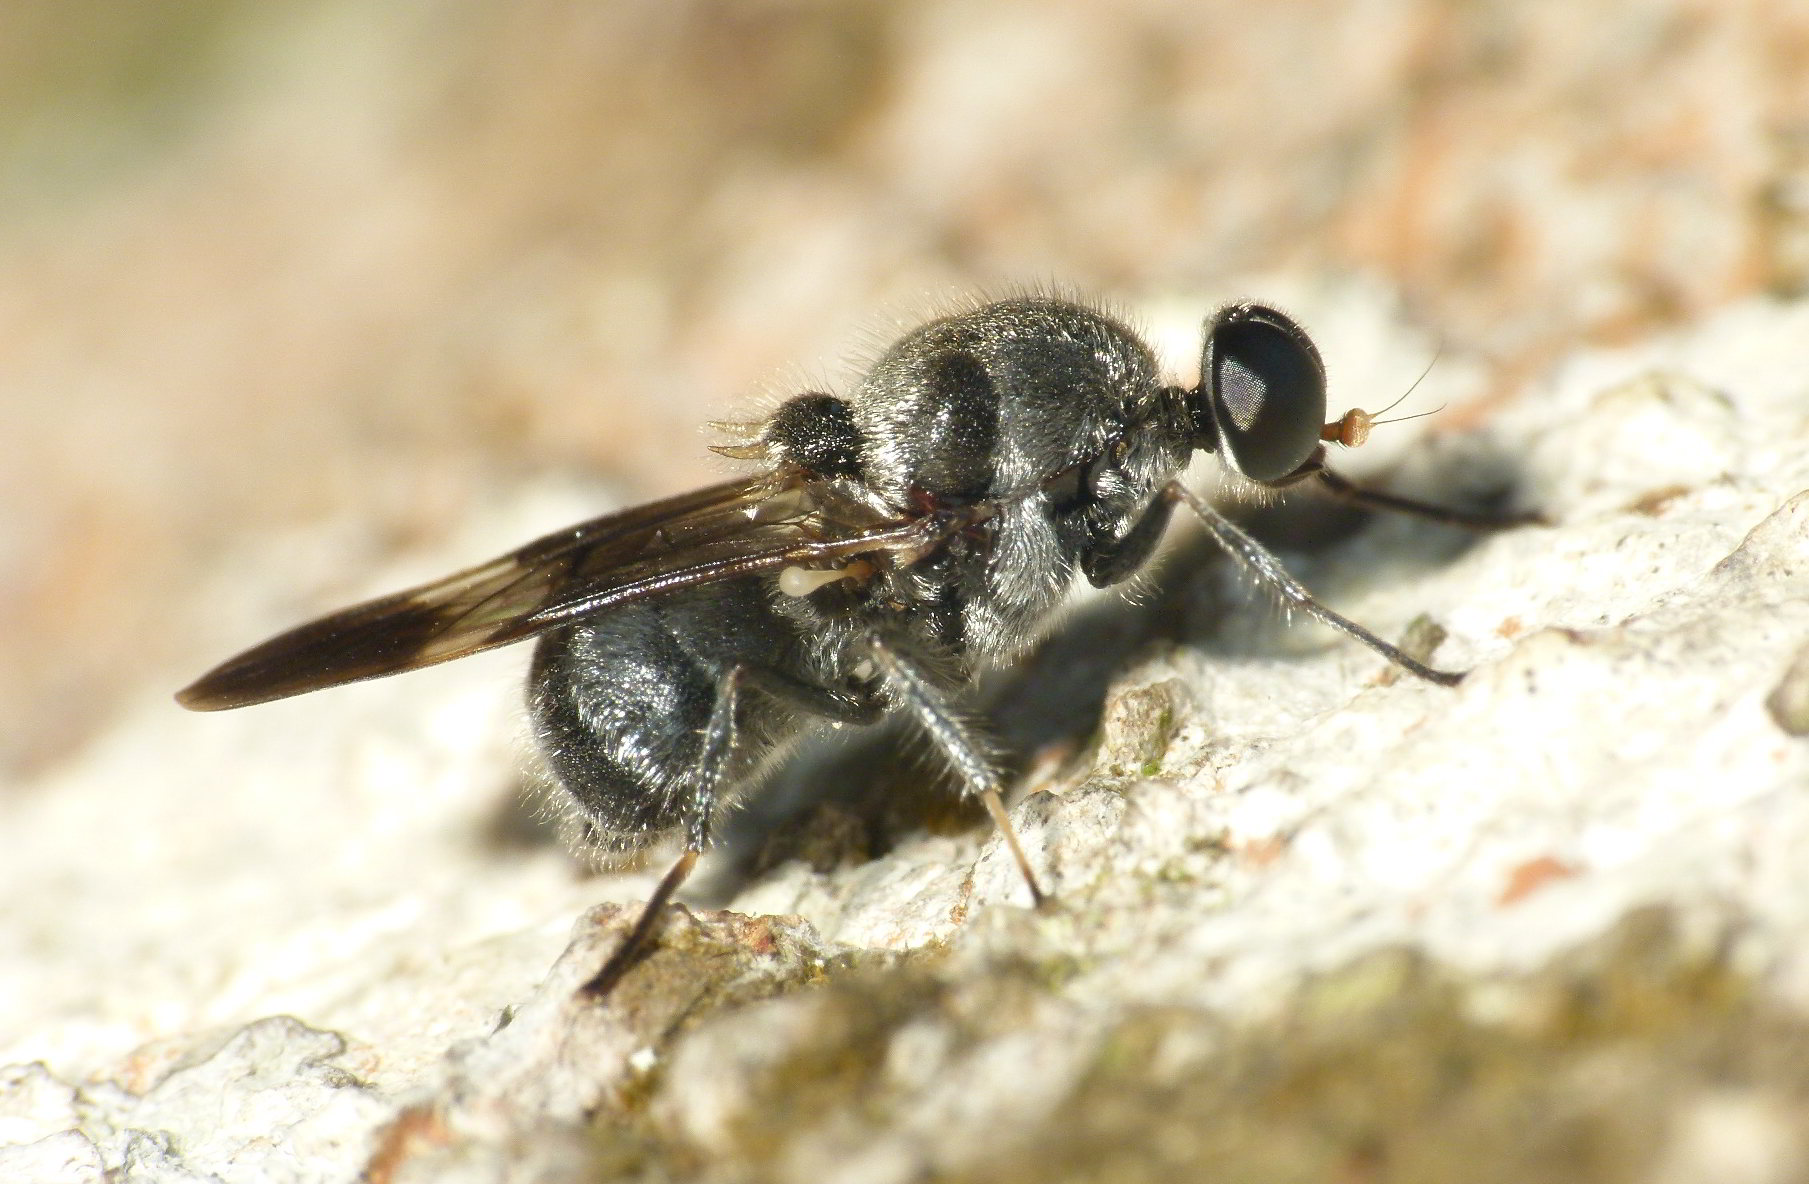 Diptera info - Discussion Forum: Fly on fallen log - Western